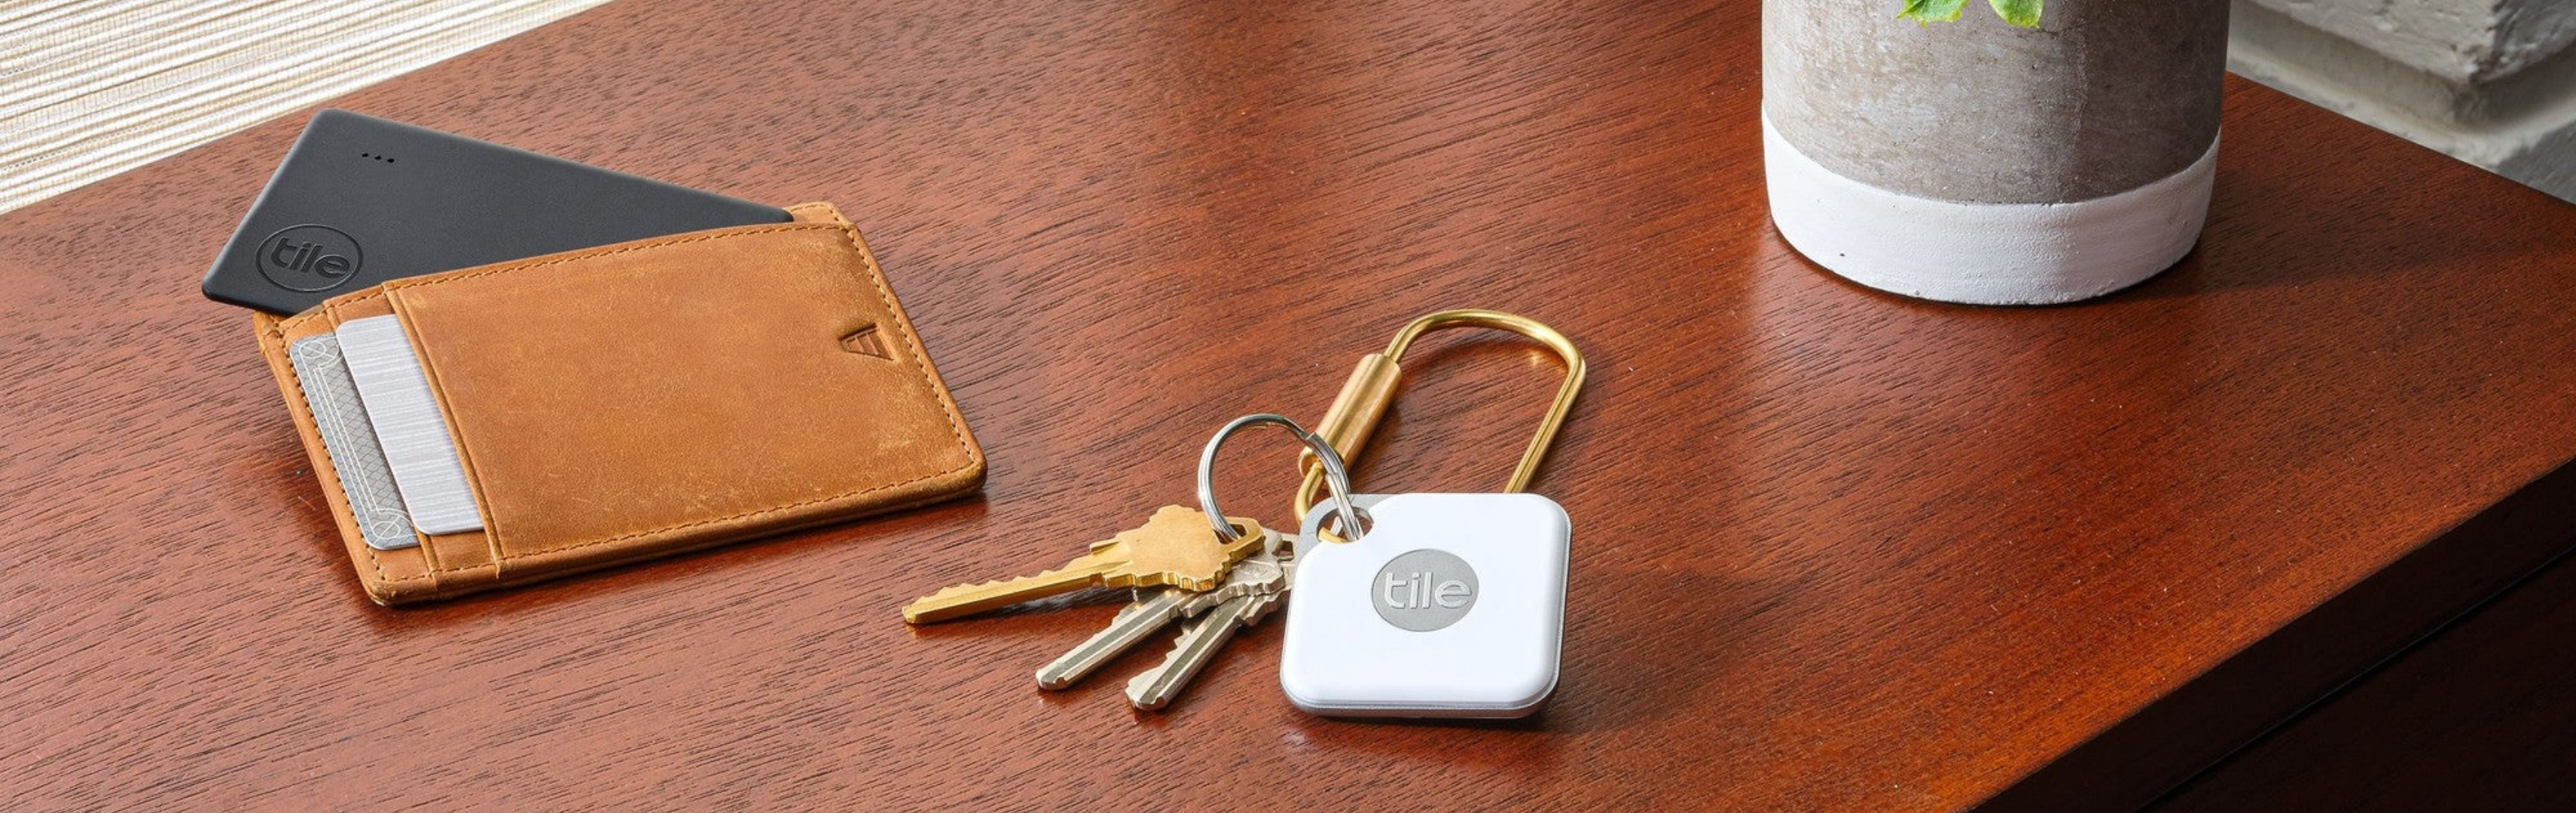 Stay organized at home and find your lost keys fast